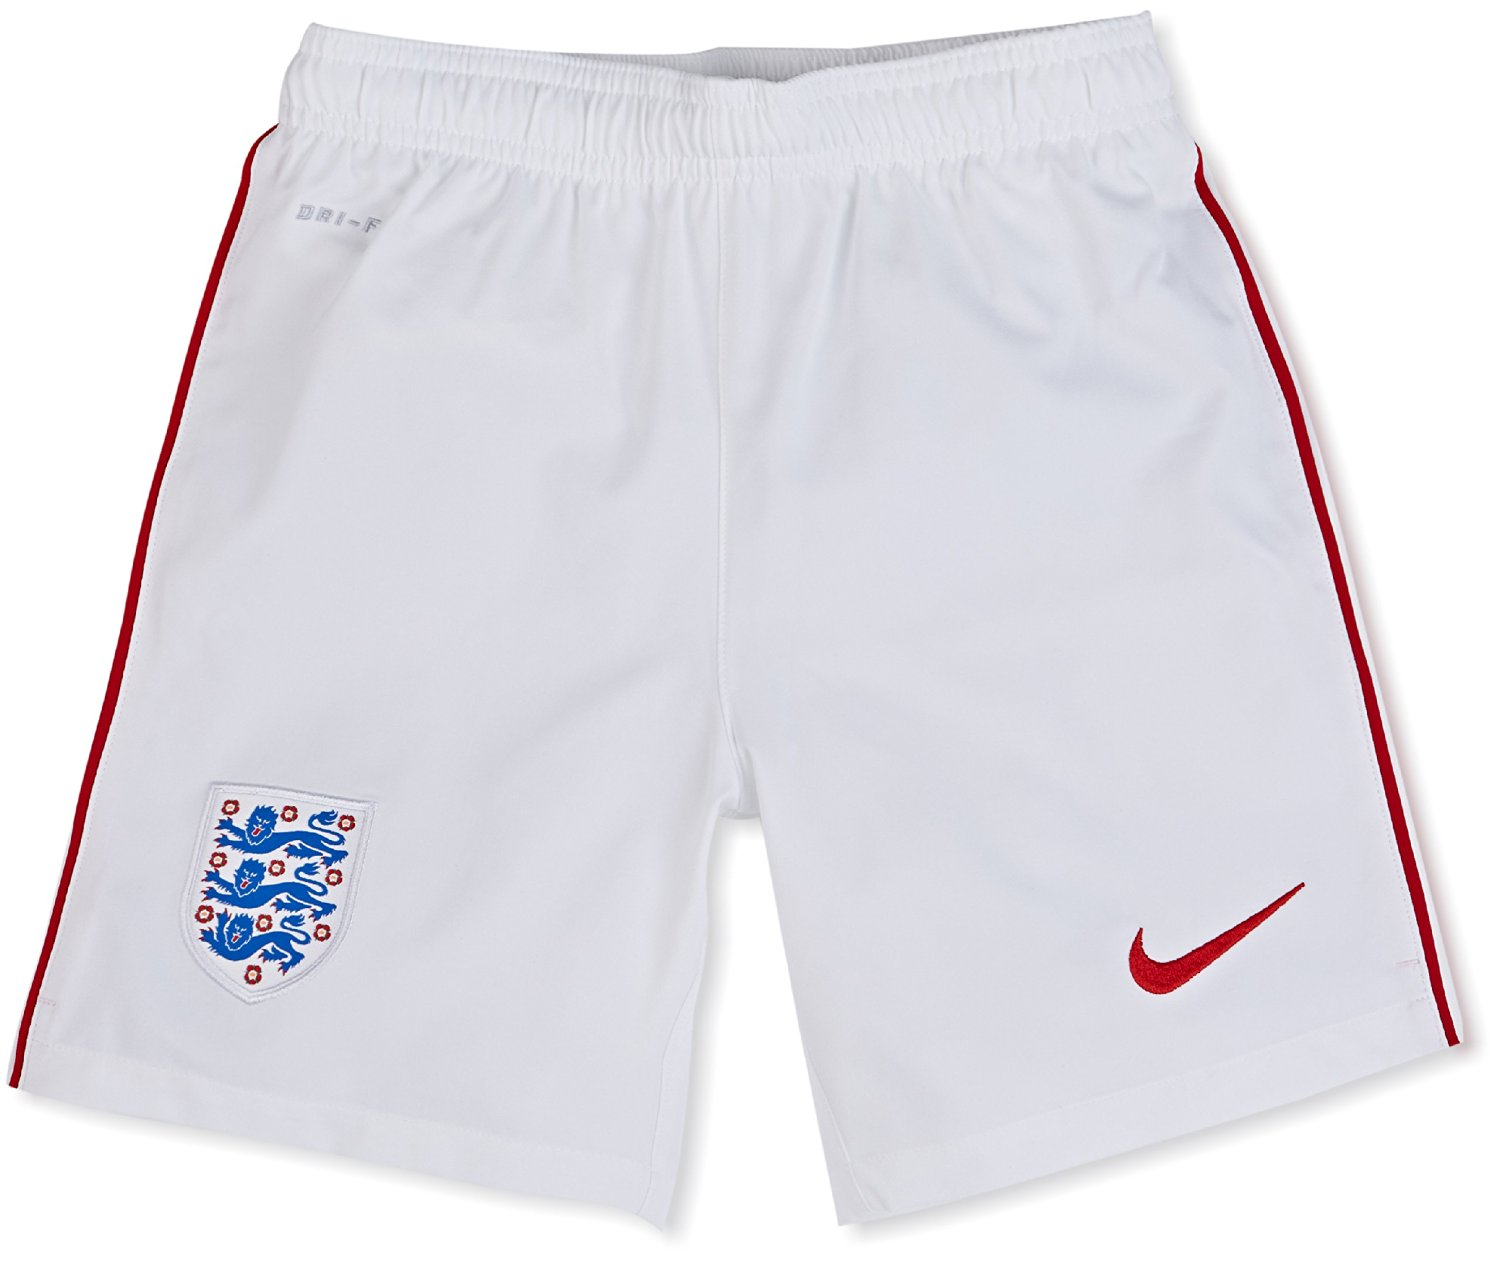 Spartak Moscow Kids Official Nike Football Shorts Burgundy Clothes, Shoes & Accessories